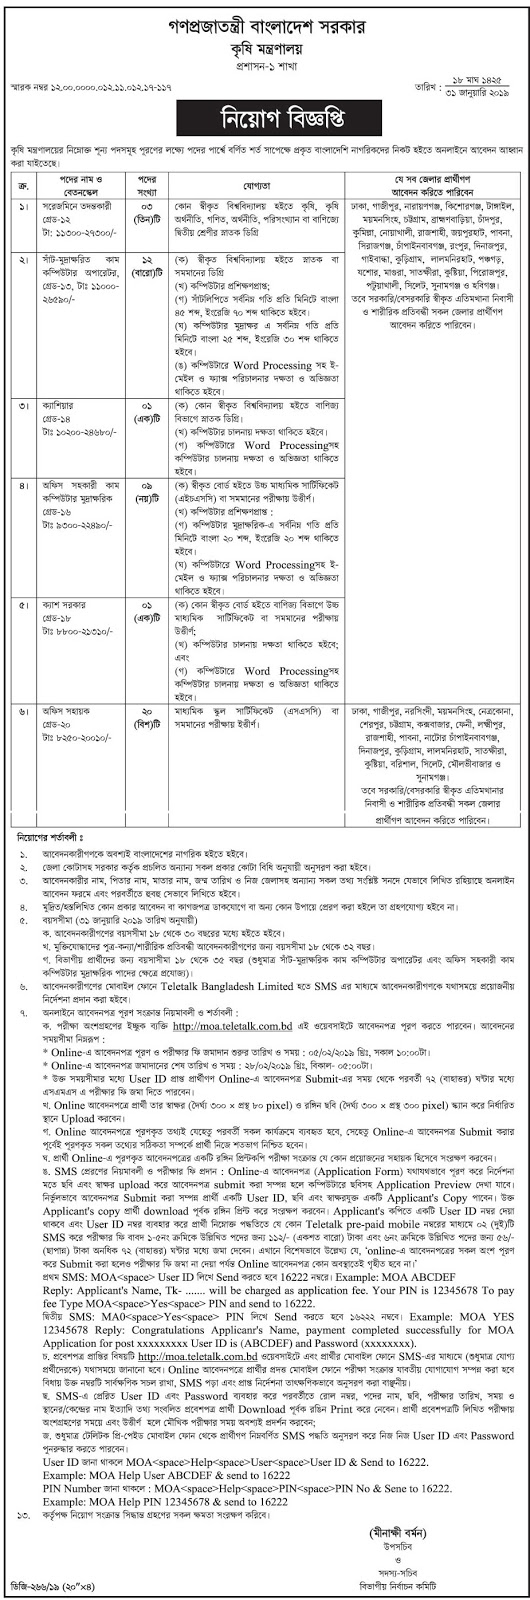 Ministry of Agriculture Job Circular 2019